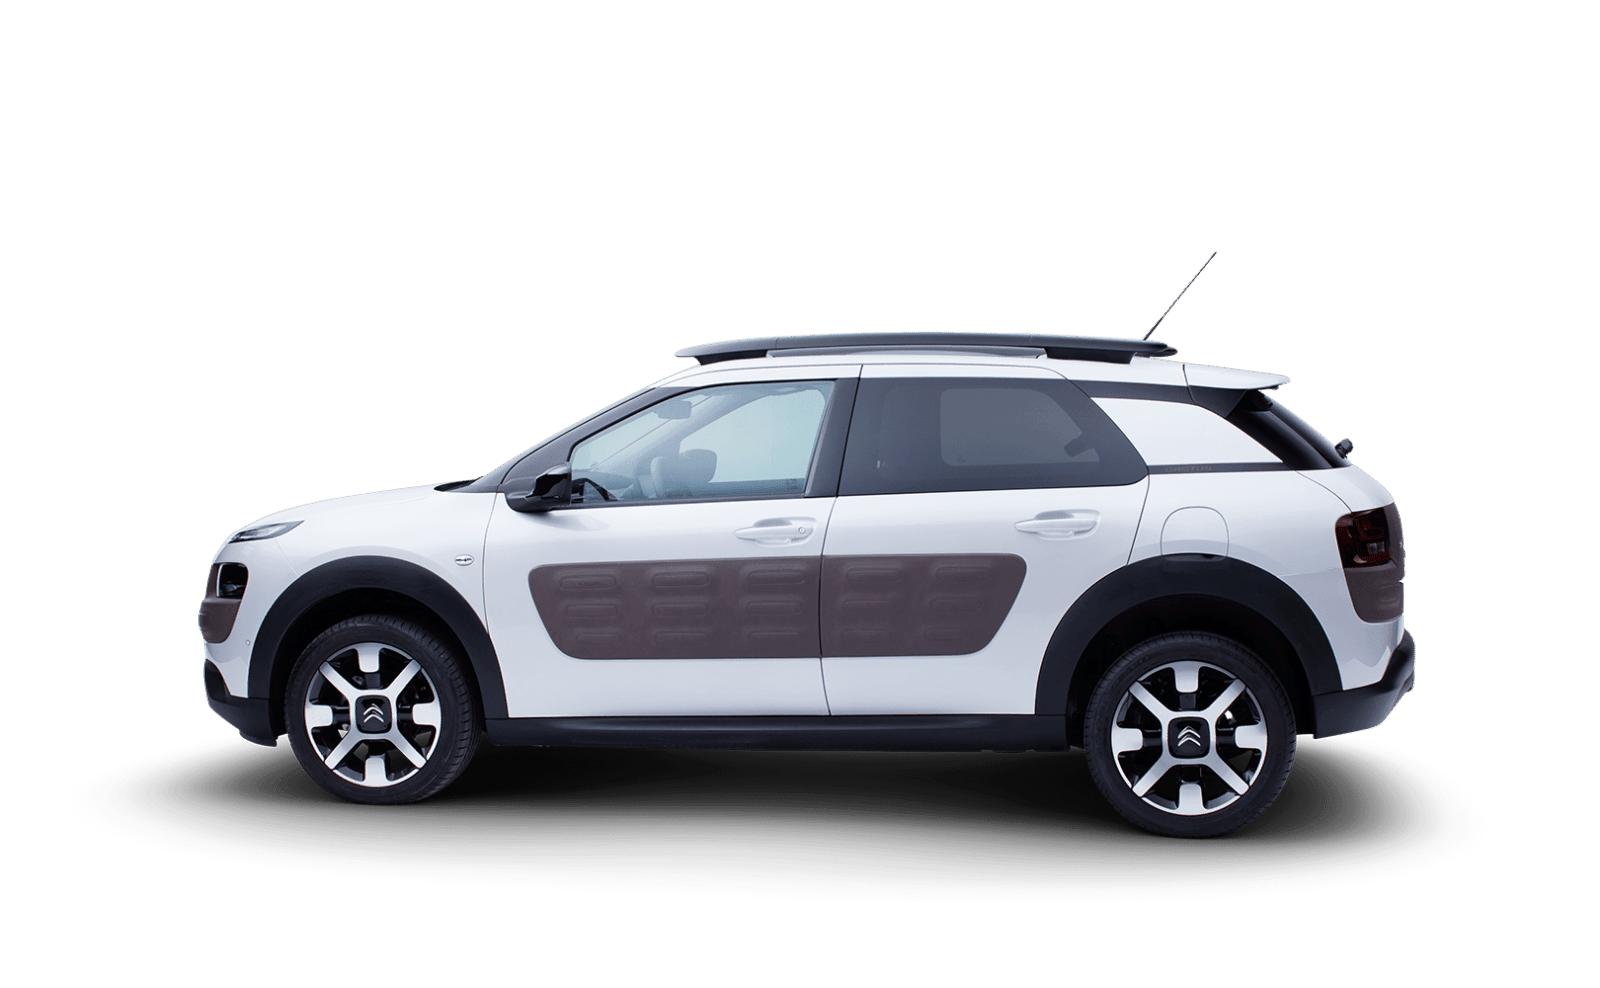 dimension c4 cactus citroen c4 cactus fiche technique. Black Bedroom Furniture Sets. Home Design Ideas